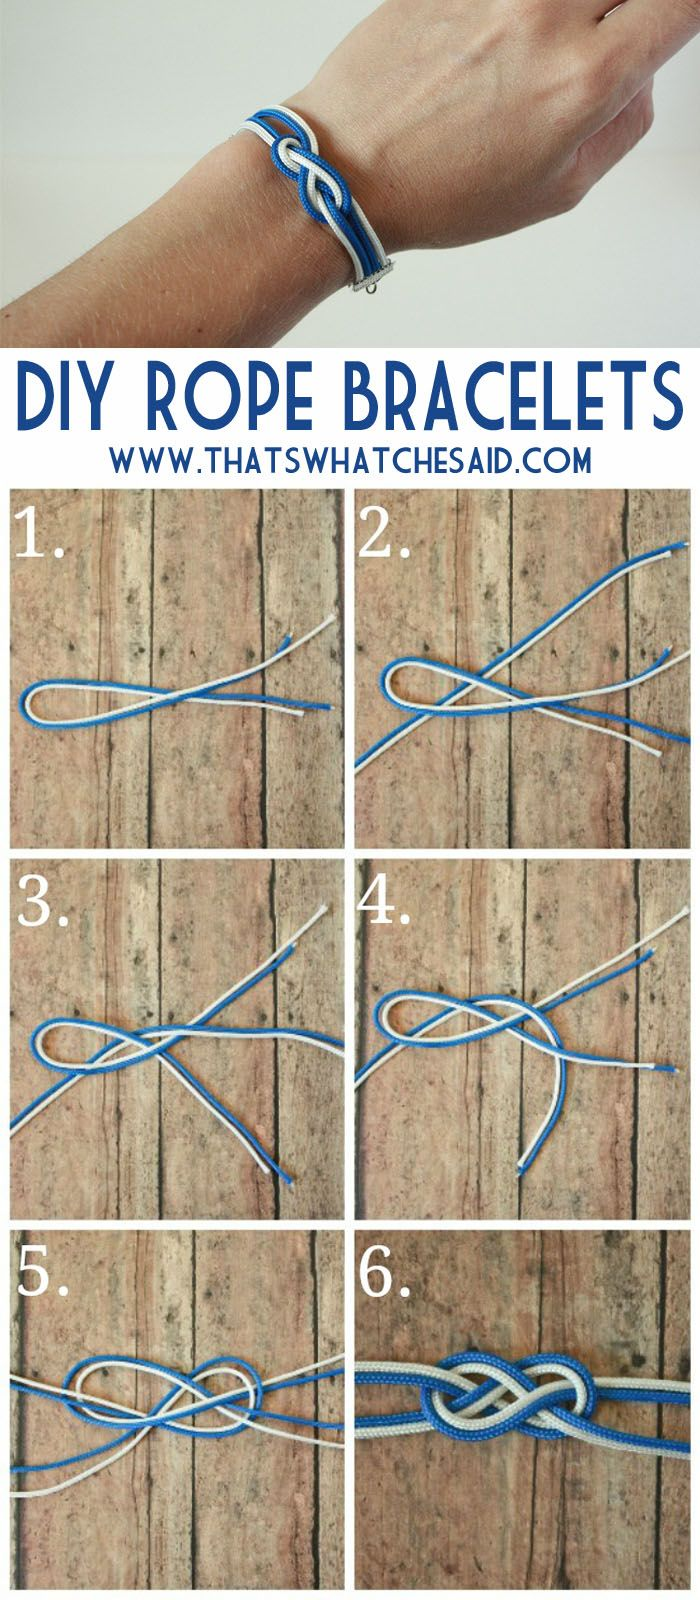 How to make rope bracelets at thatswhatchesaid.com